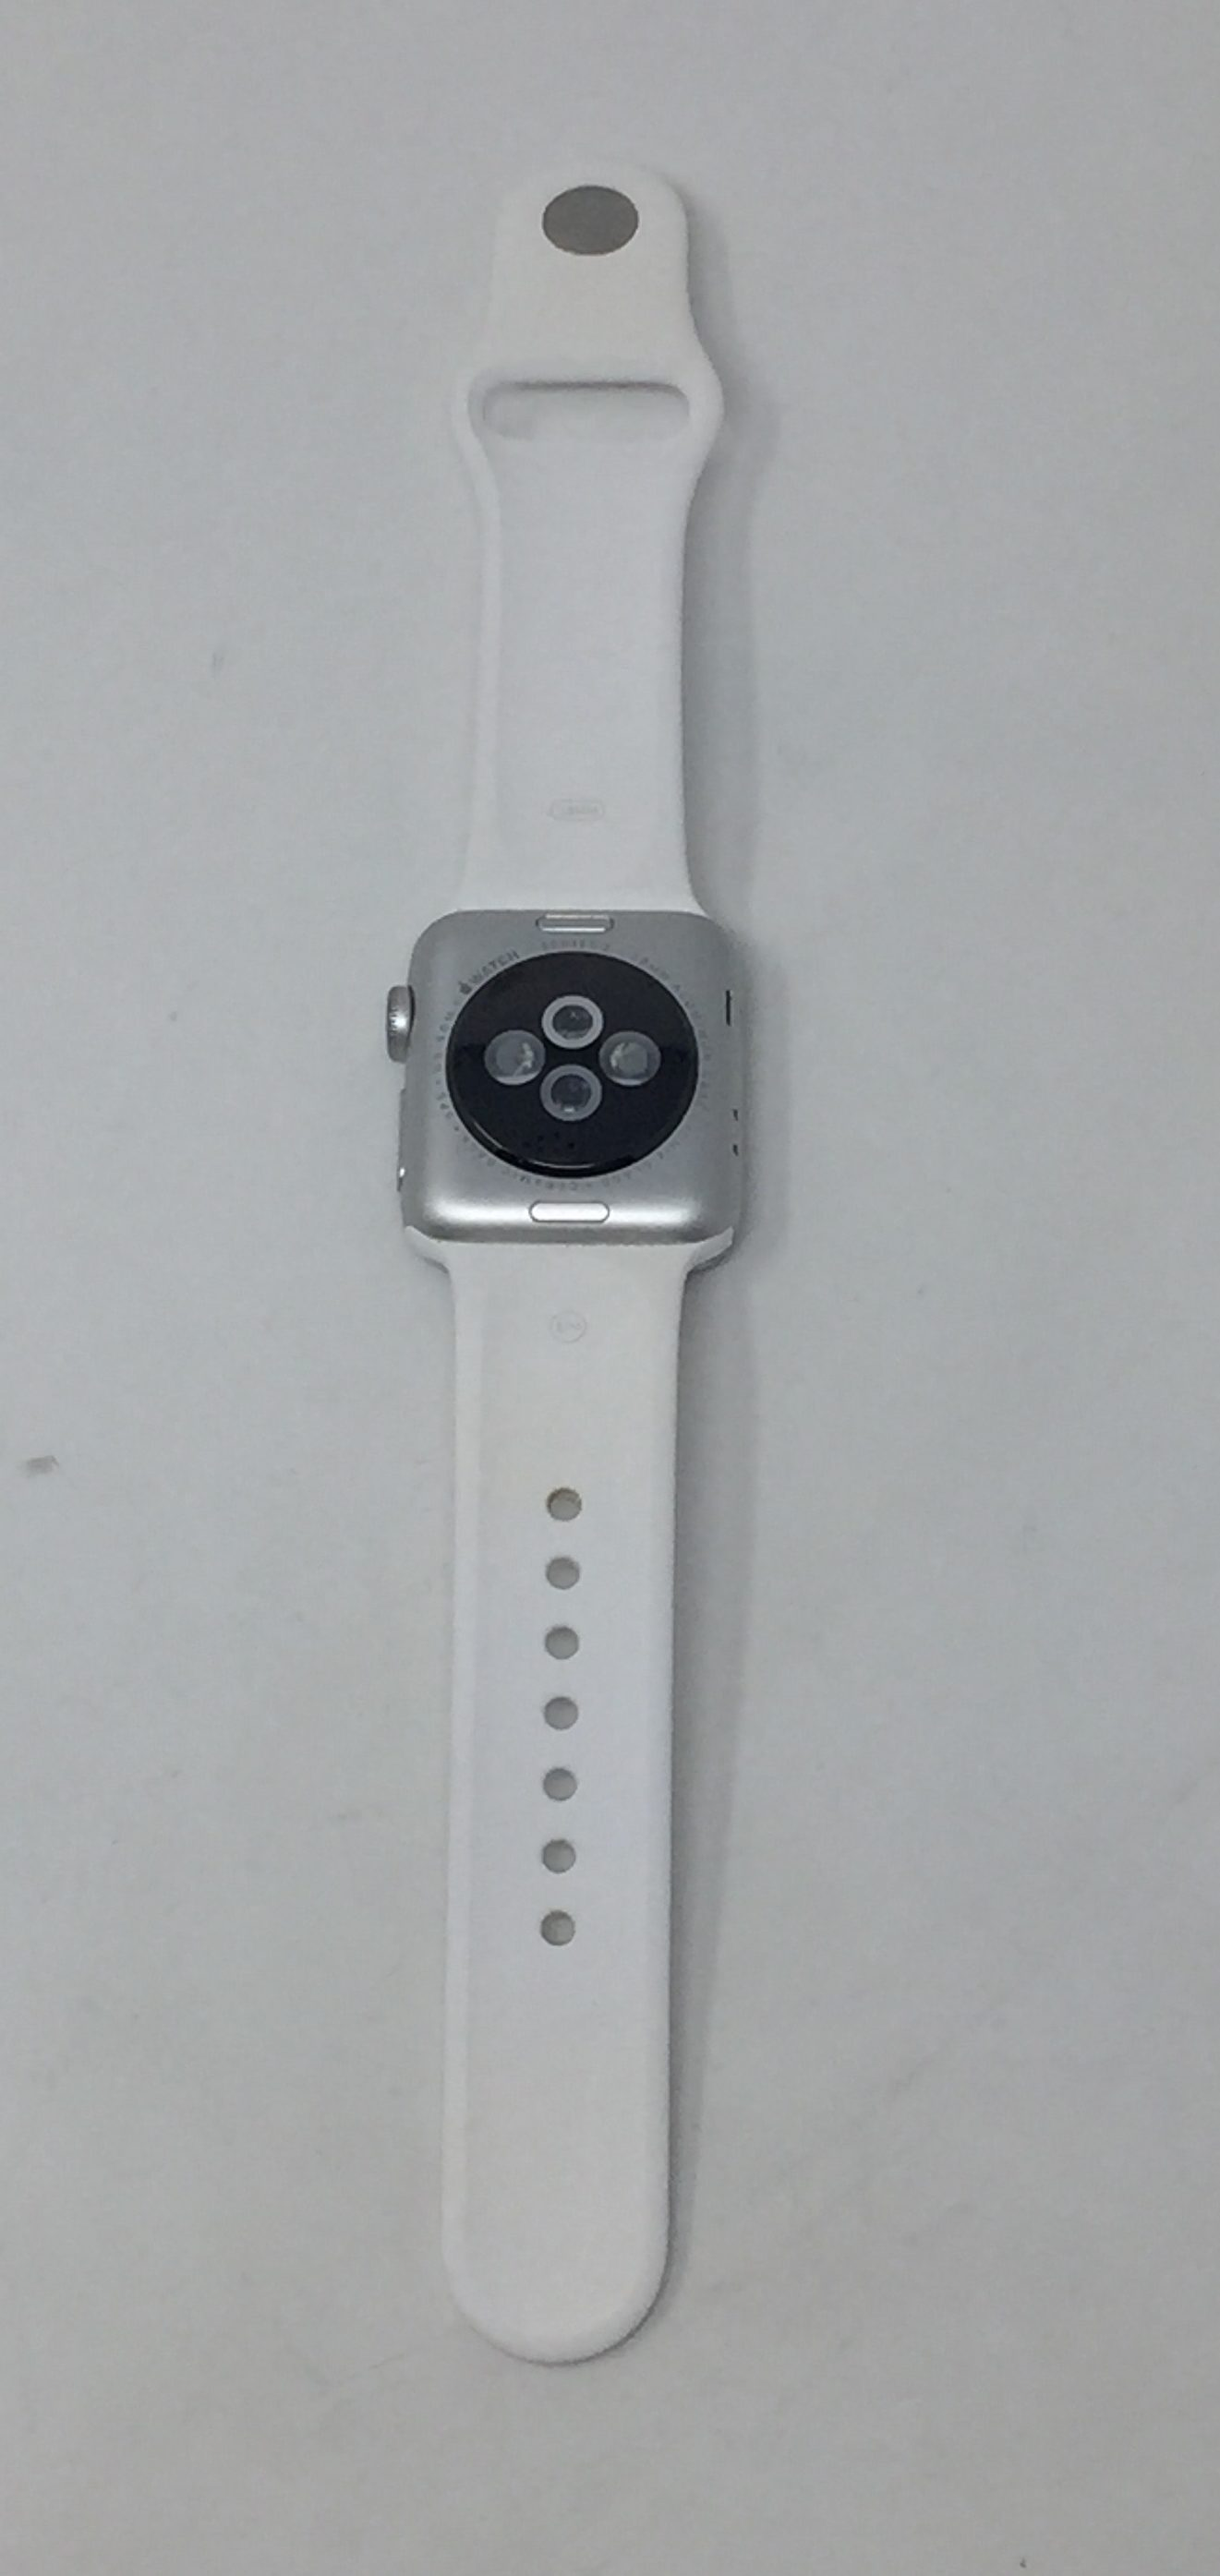 Watch Series 2 Aluminum (38mm), WHITE, imagen 2